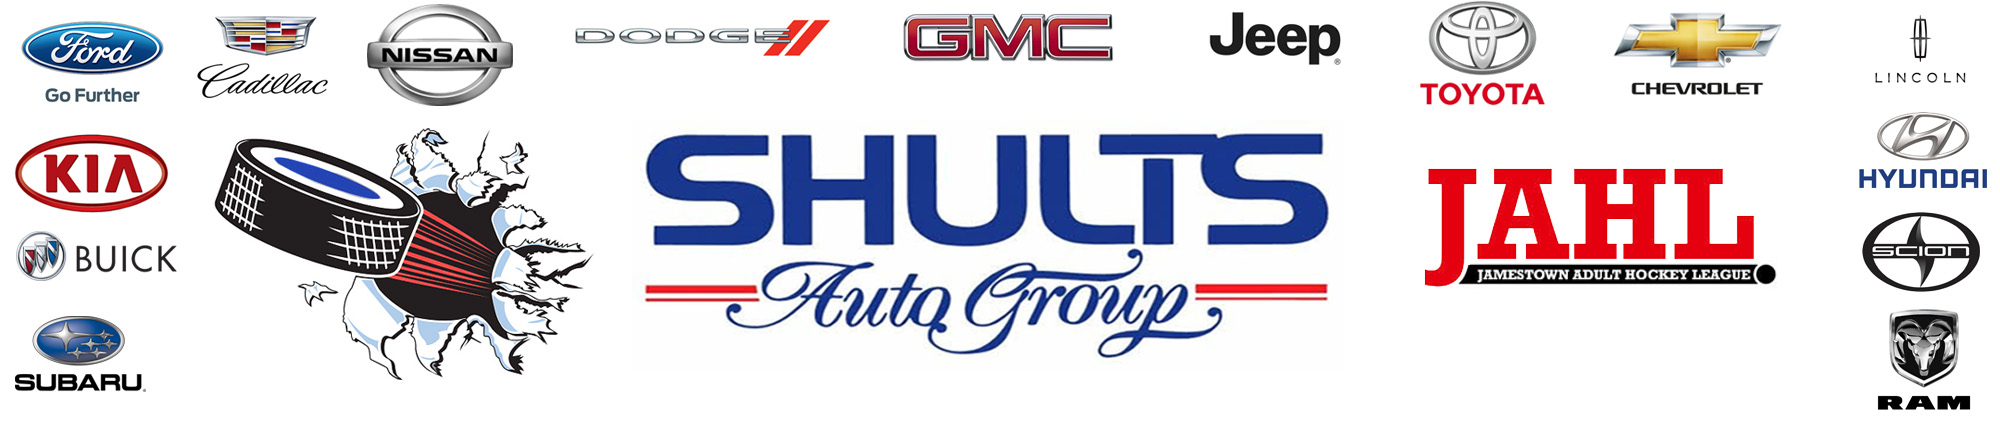 Shults Autogroup